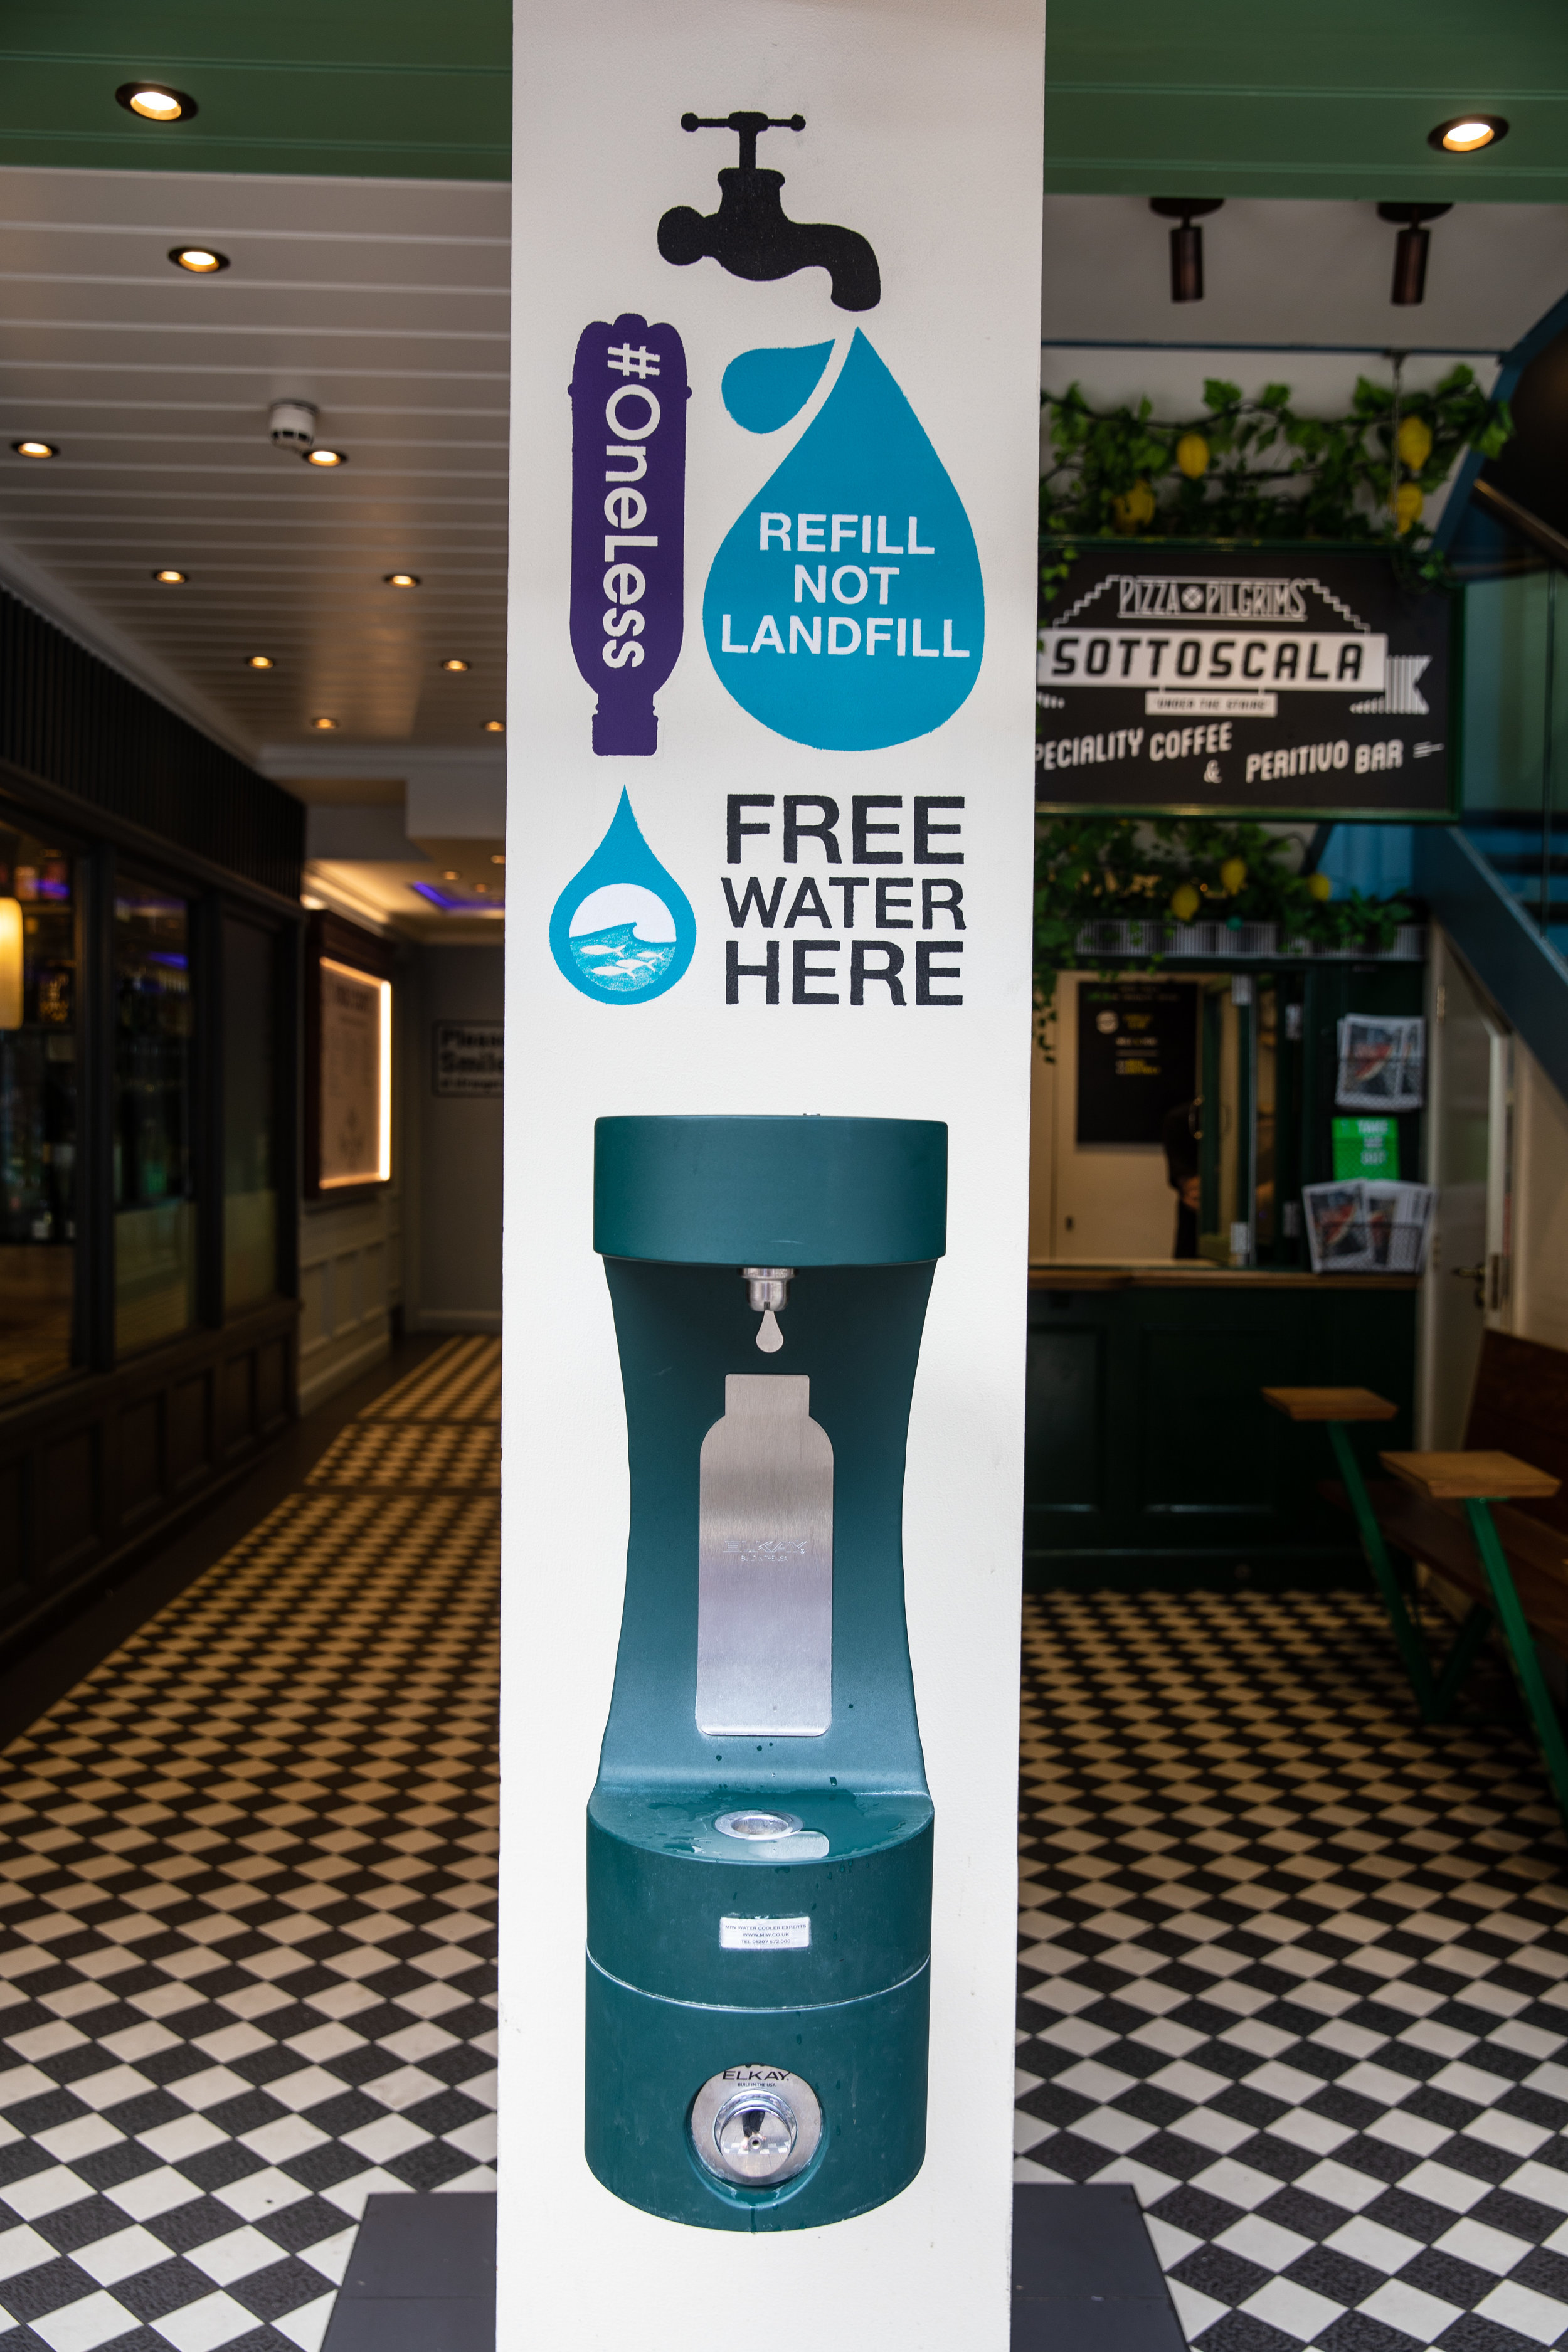 Shaftesbury is proud to announce that the free water refill station in Carnaby's Kingly Court has saved the use of over 45,000 plastic 500ml sized bottles since it was installed in March 2018.